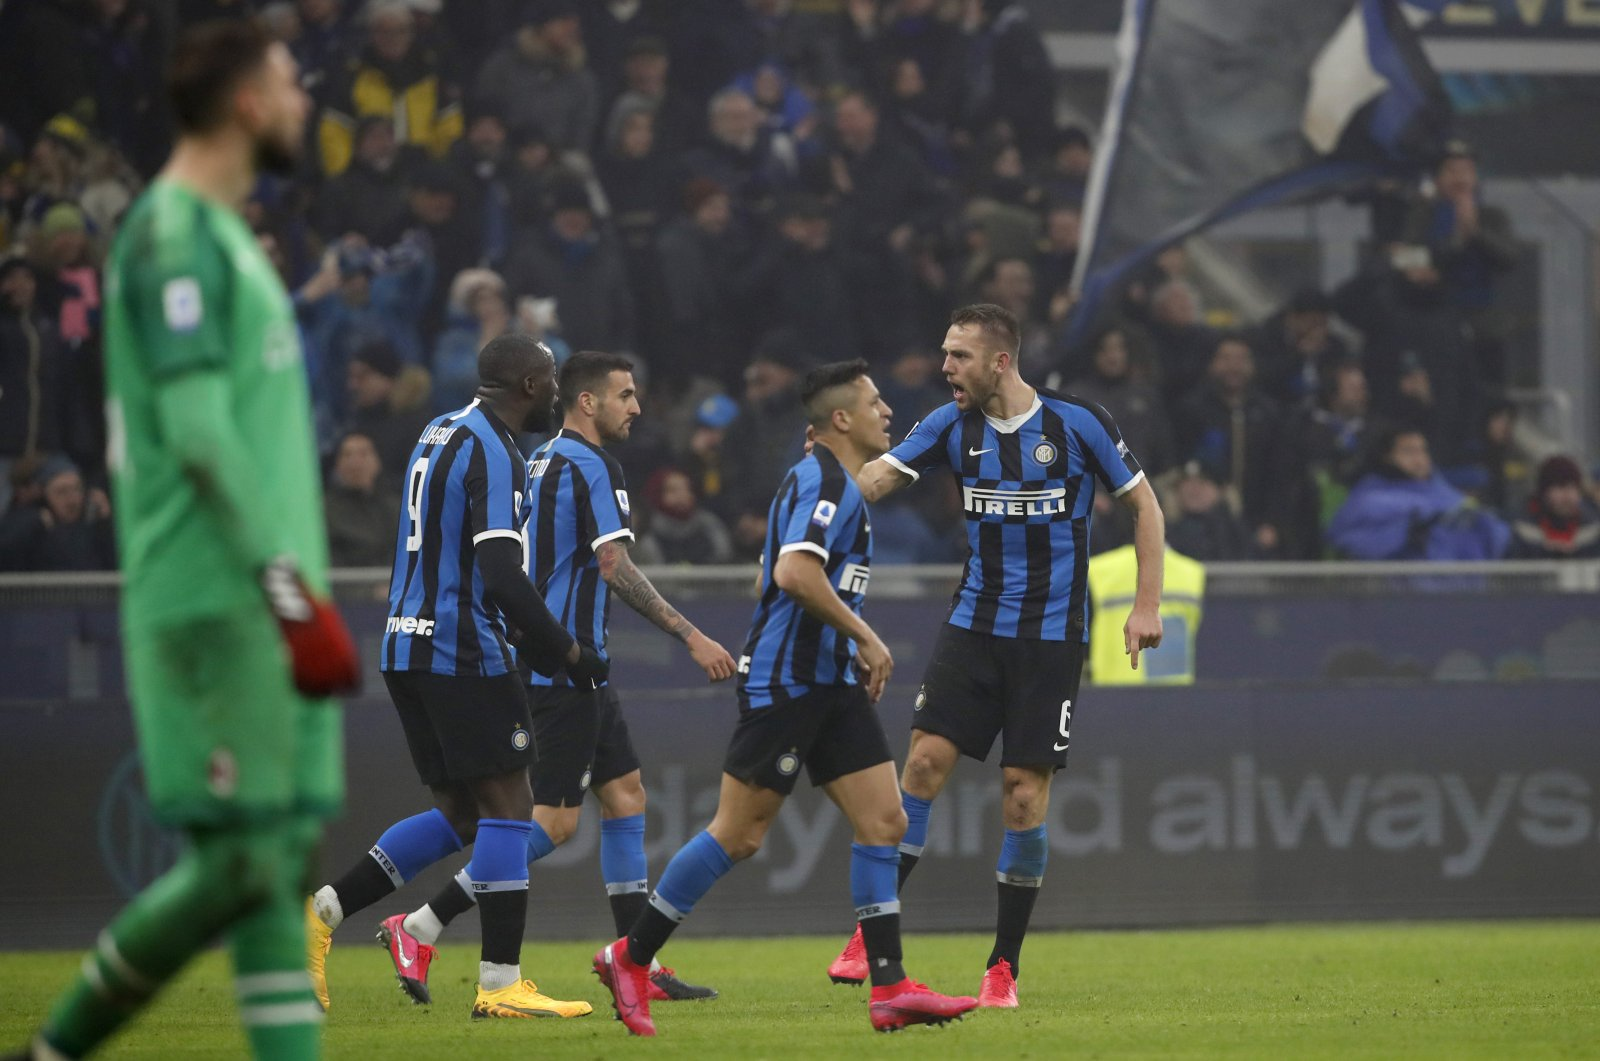 Inter Milan players celebrate a goal during a Serie A match against AC Milan, in Milan, Italy, Feb. 9, 2020. (AP Photo)